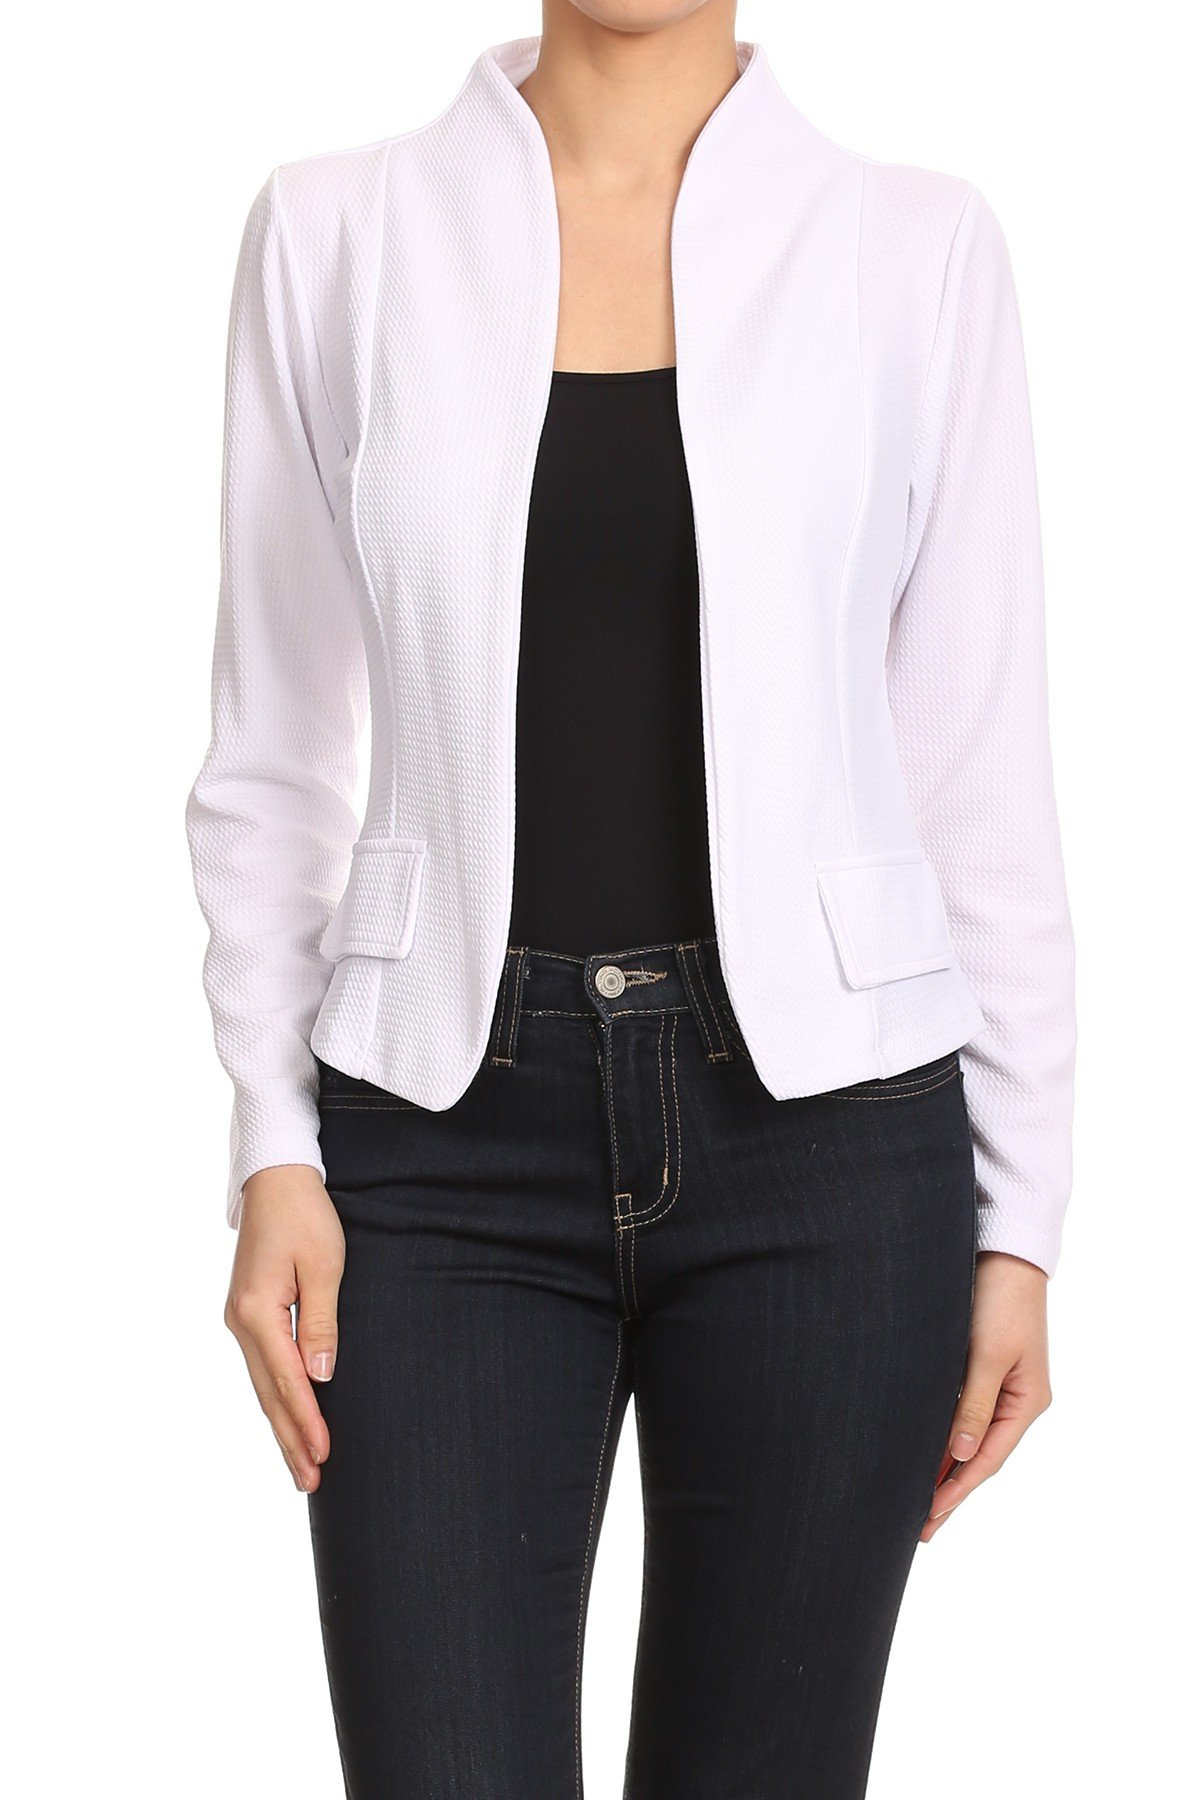 MissyMissy Womens Casual Business Loose Fit Solid Blazer Jackets J907 (X-Large, White)